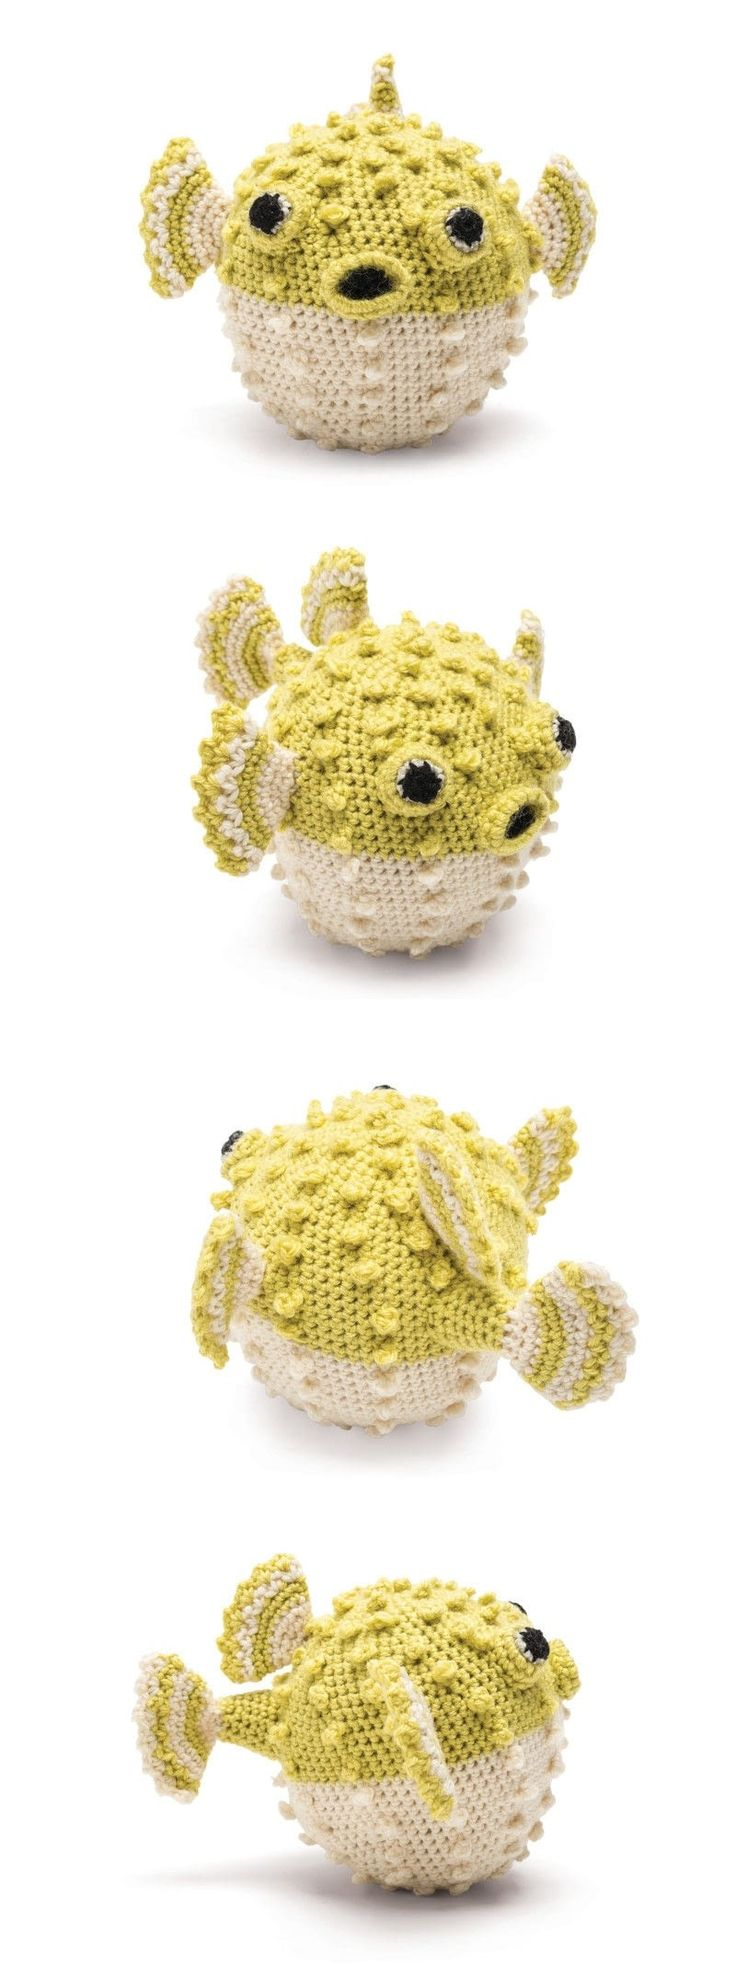 Puffer fish. Free crochet pattern amigurumi    - Amigurumi isn't my style of crochet, but I thought this was so unique and really loved it.